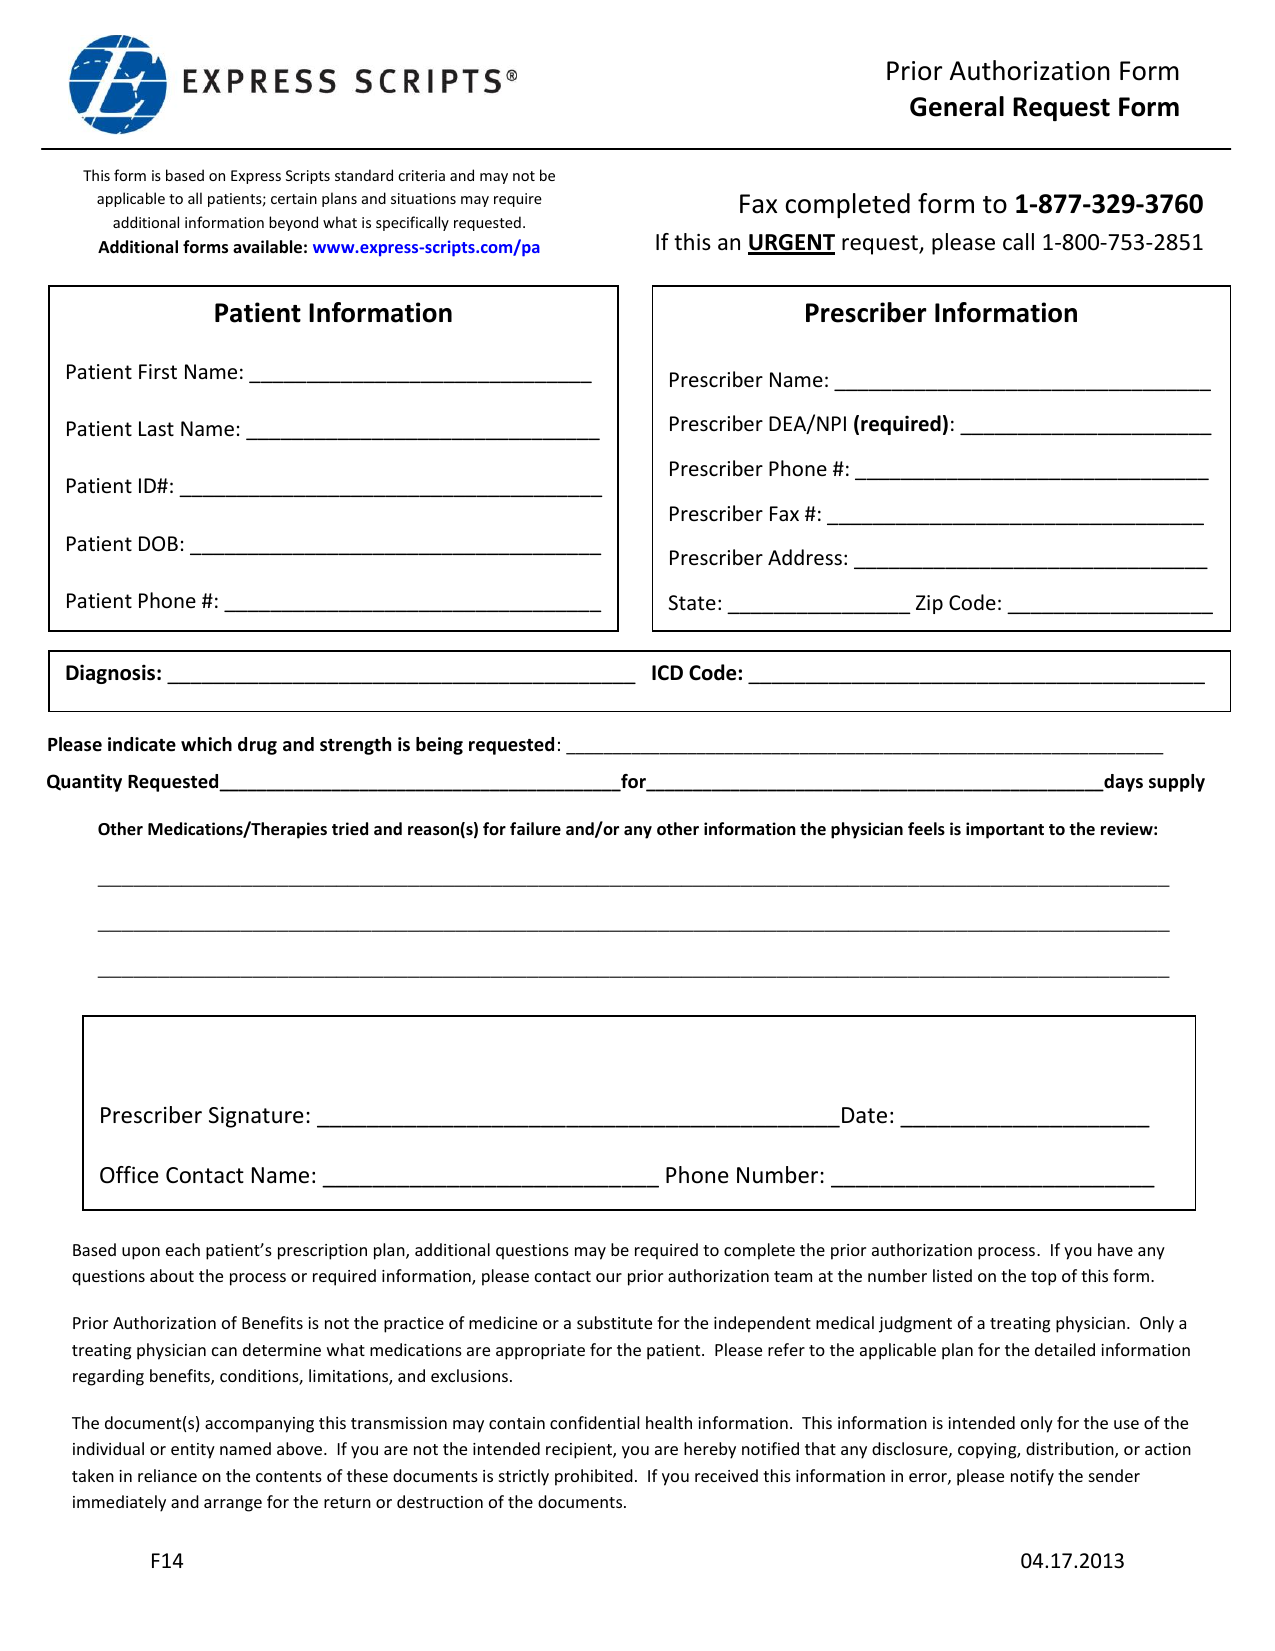 download express scripts prior authorization form